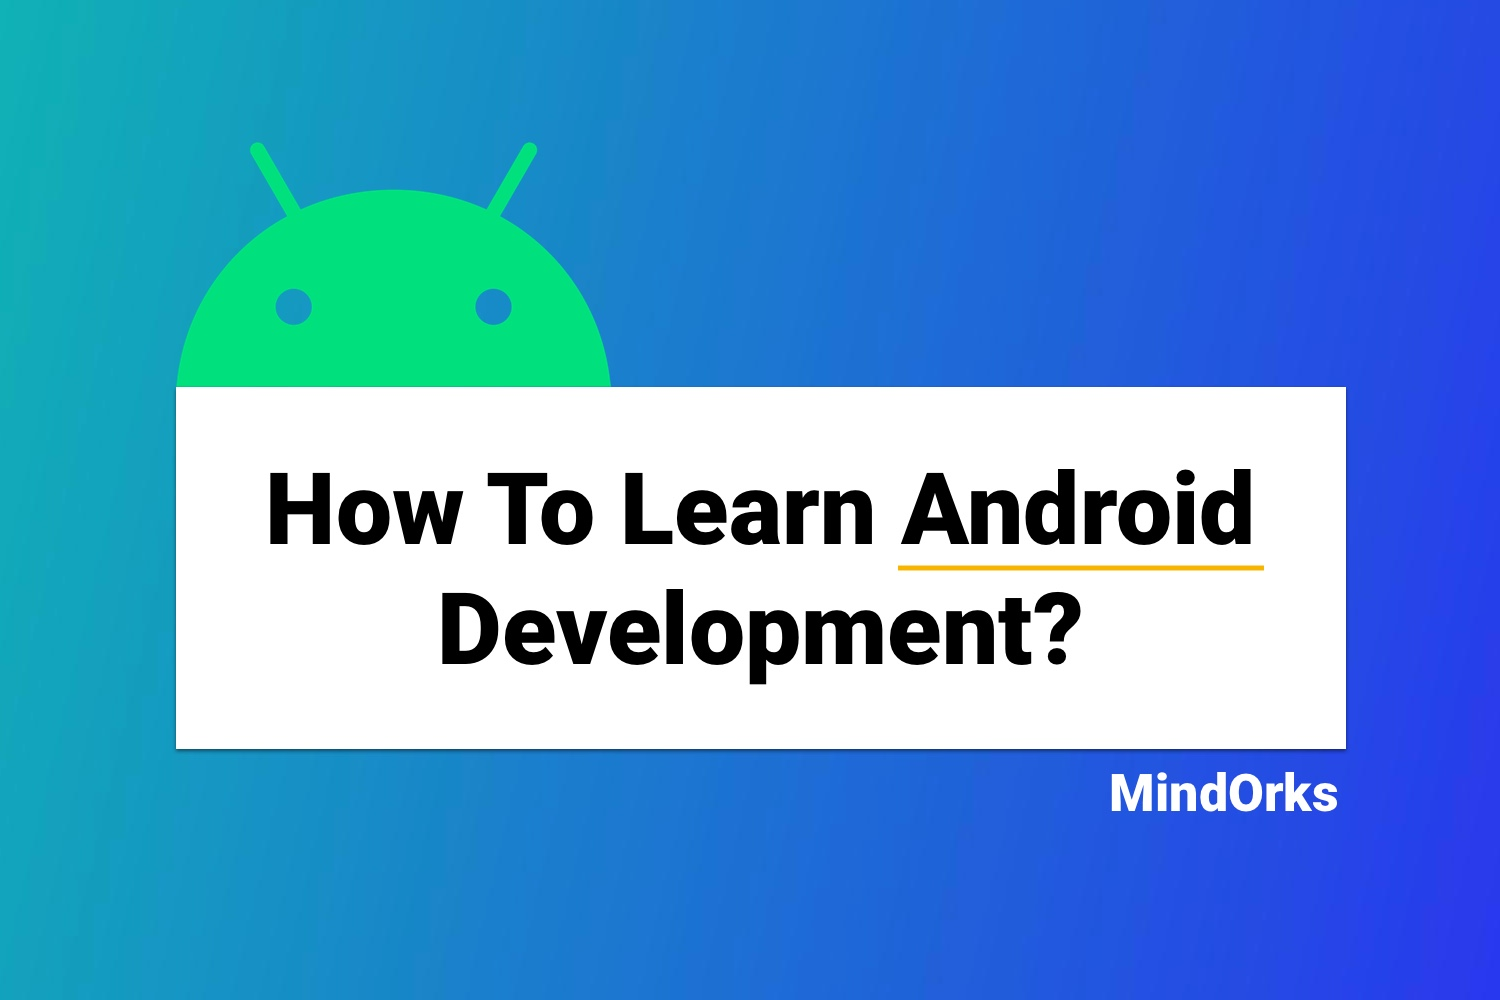 How To Learn Android Development?